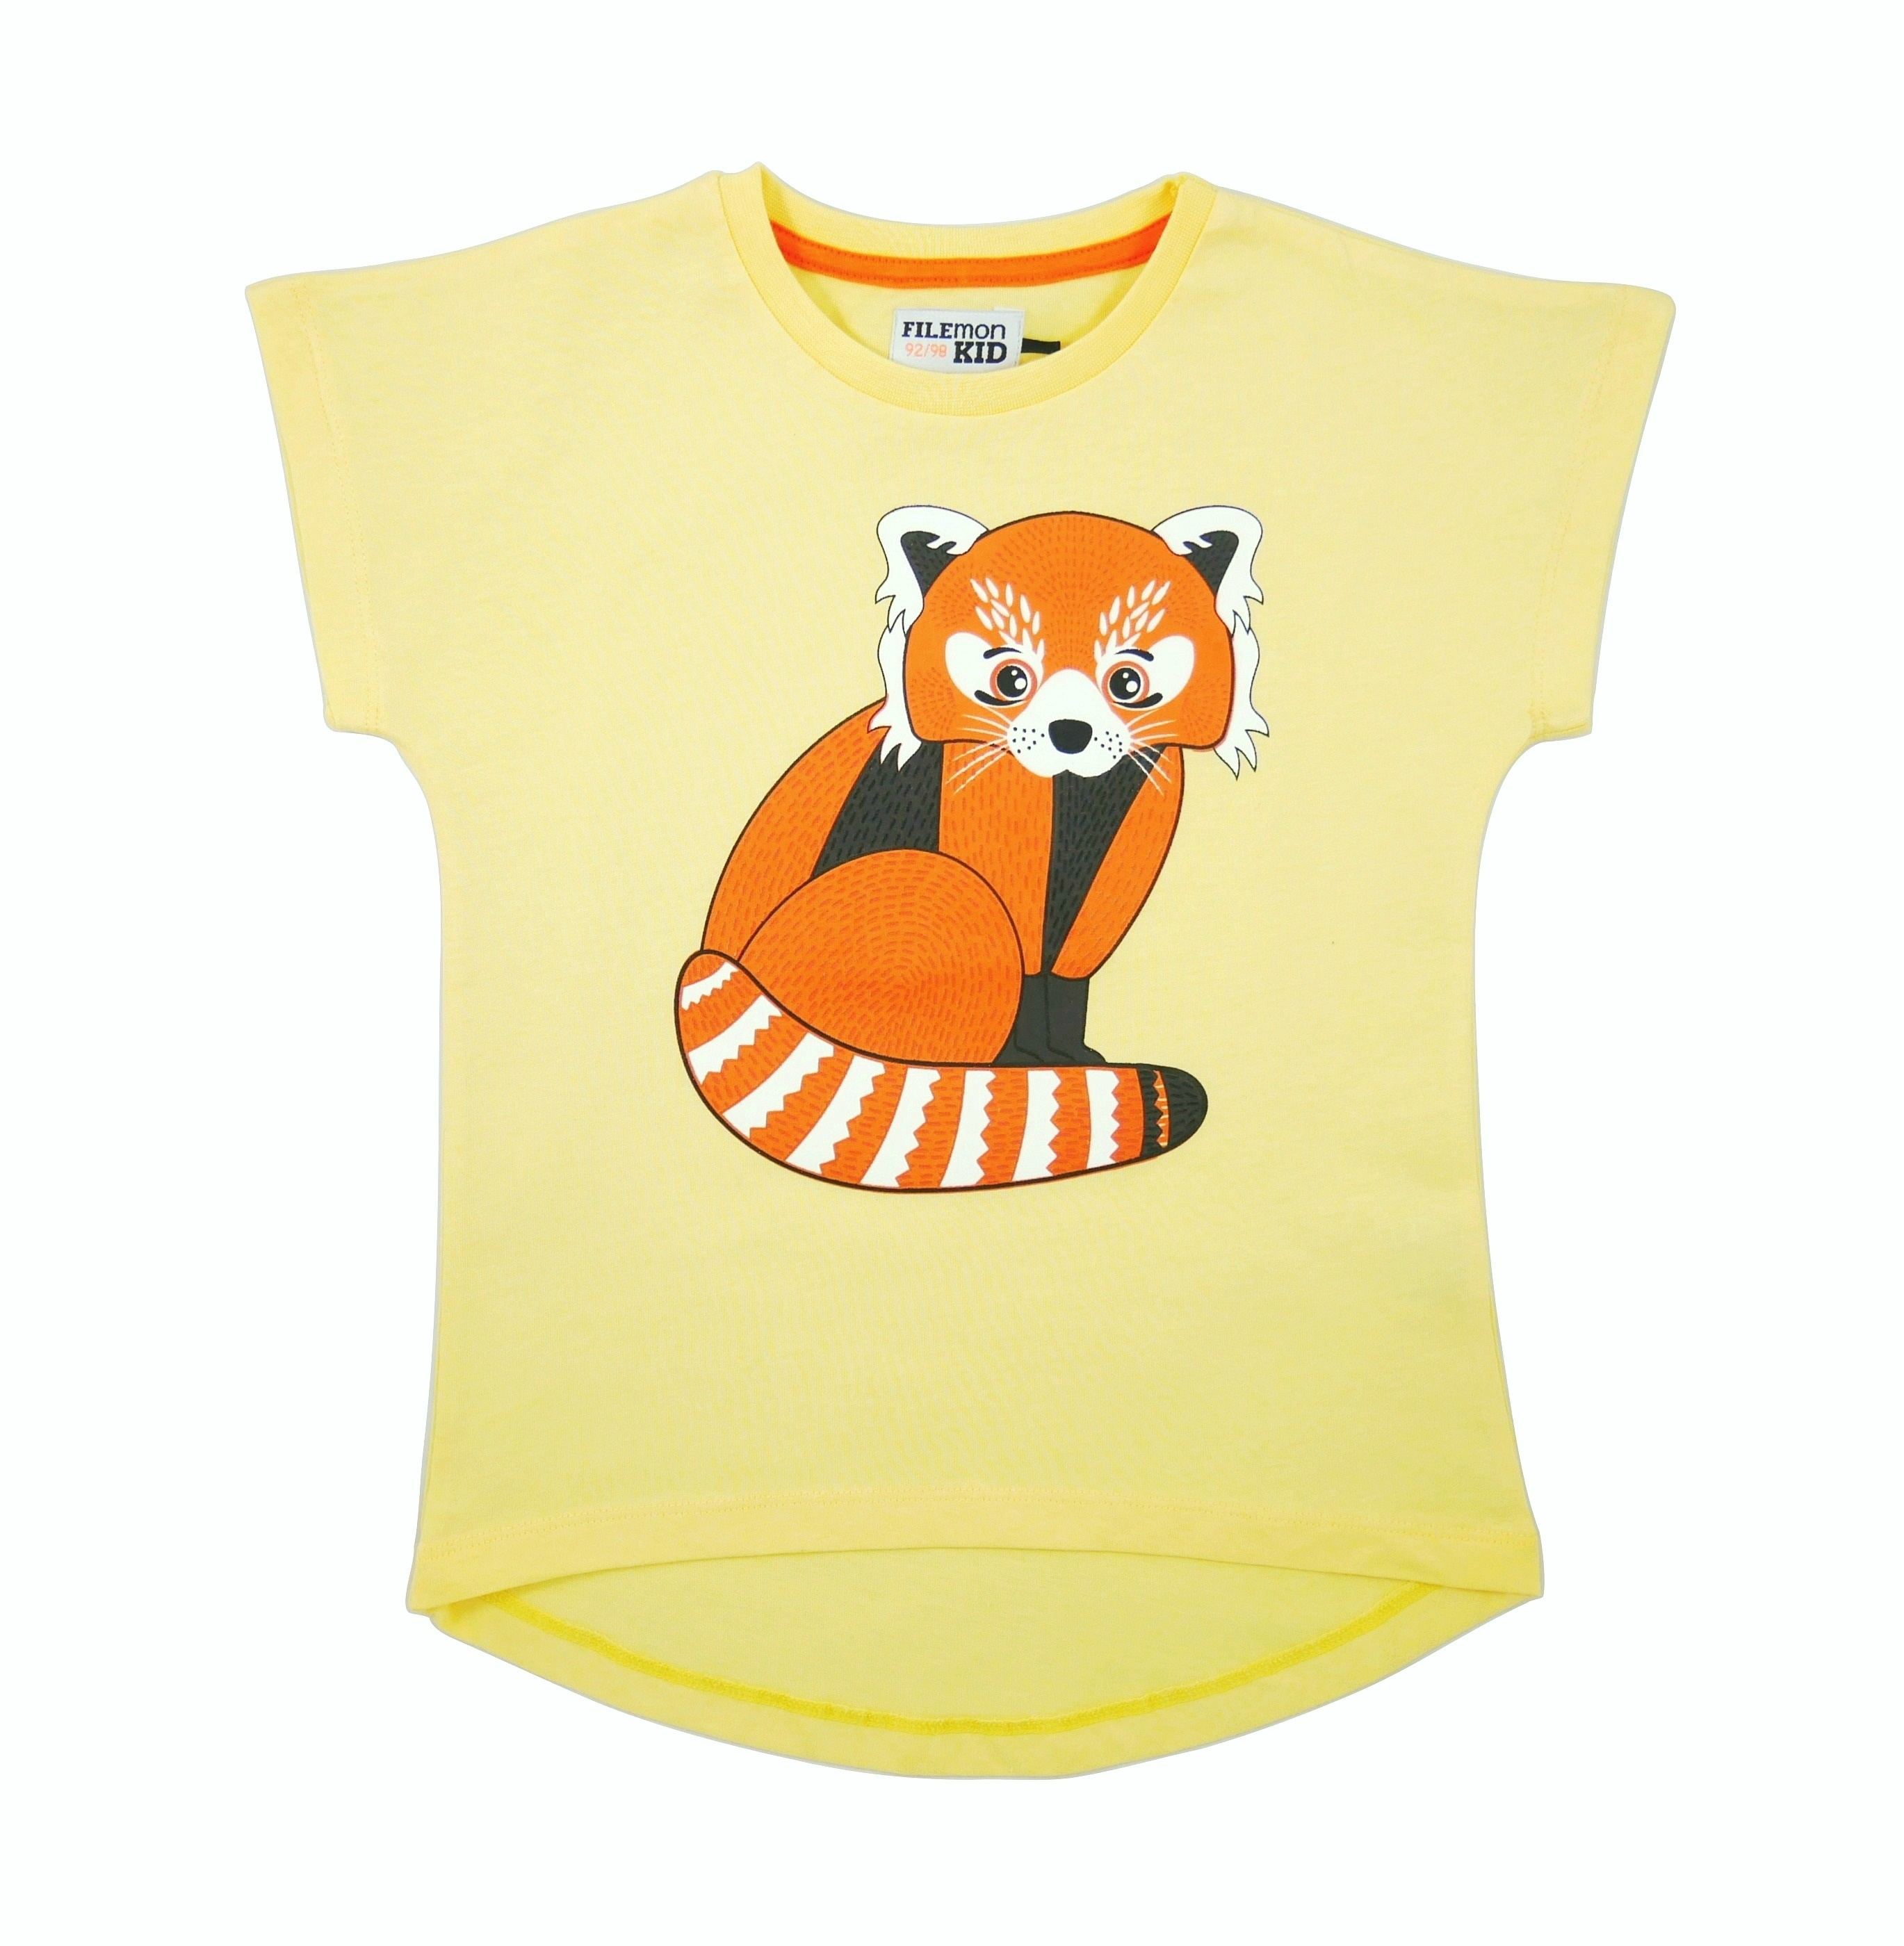 19SSTR T-shirt Red Panda